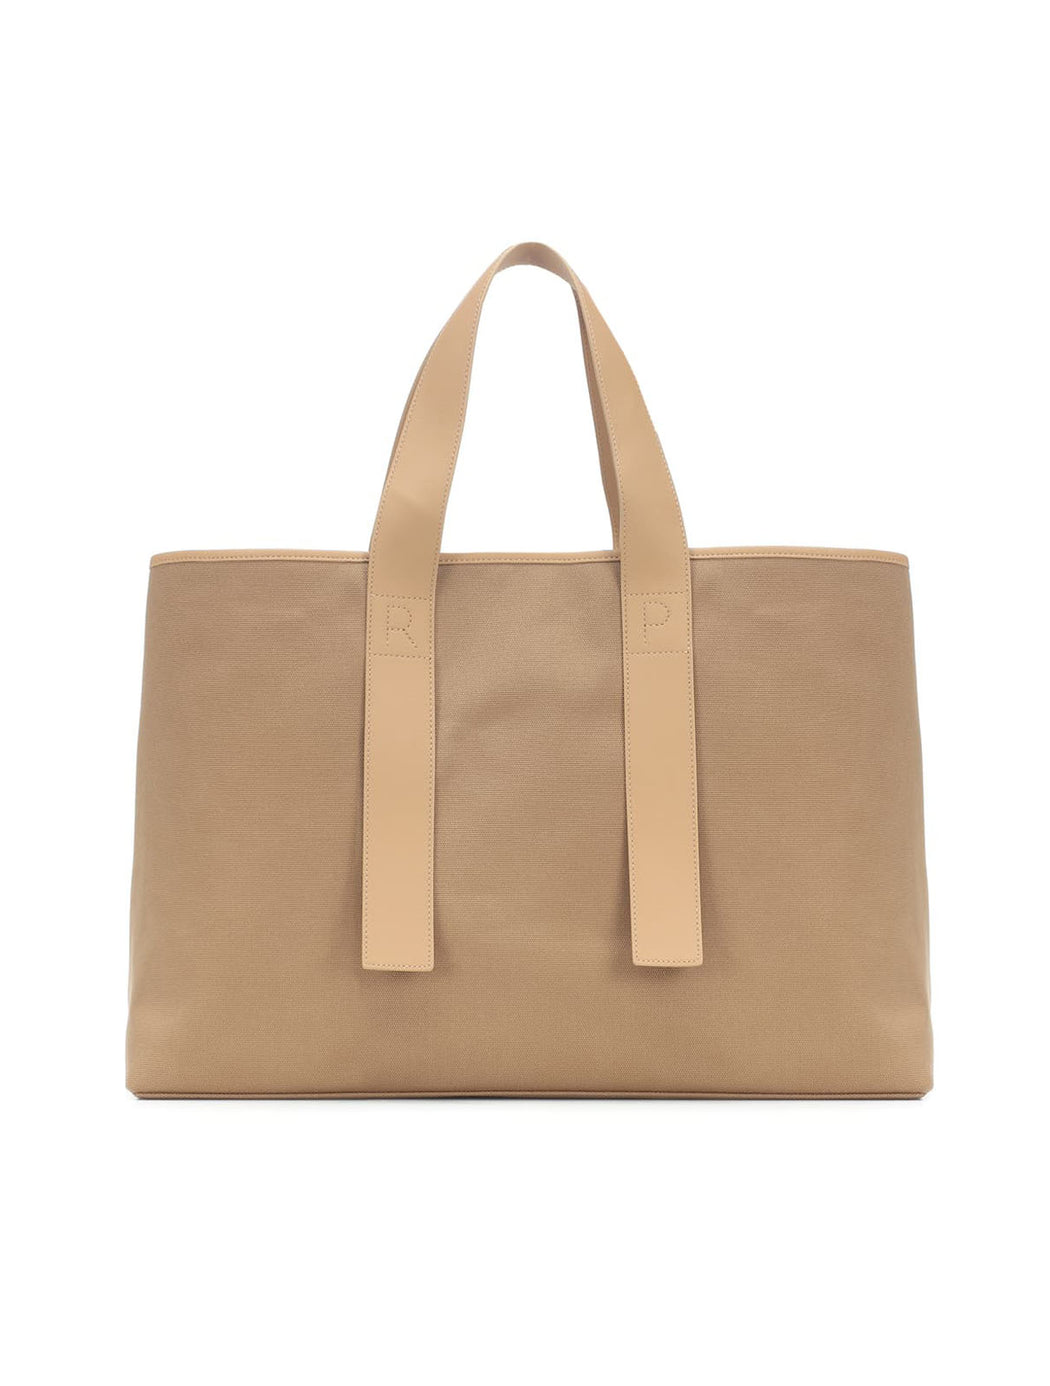 Carter Tote